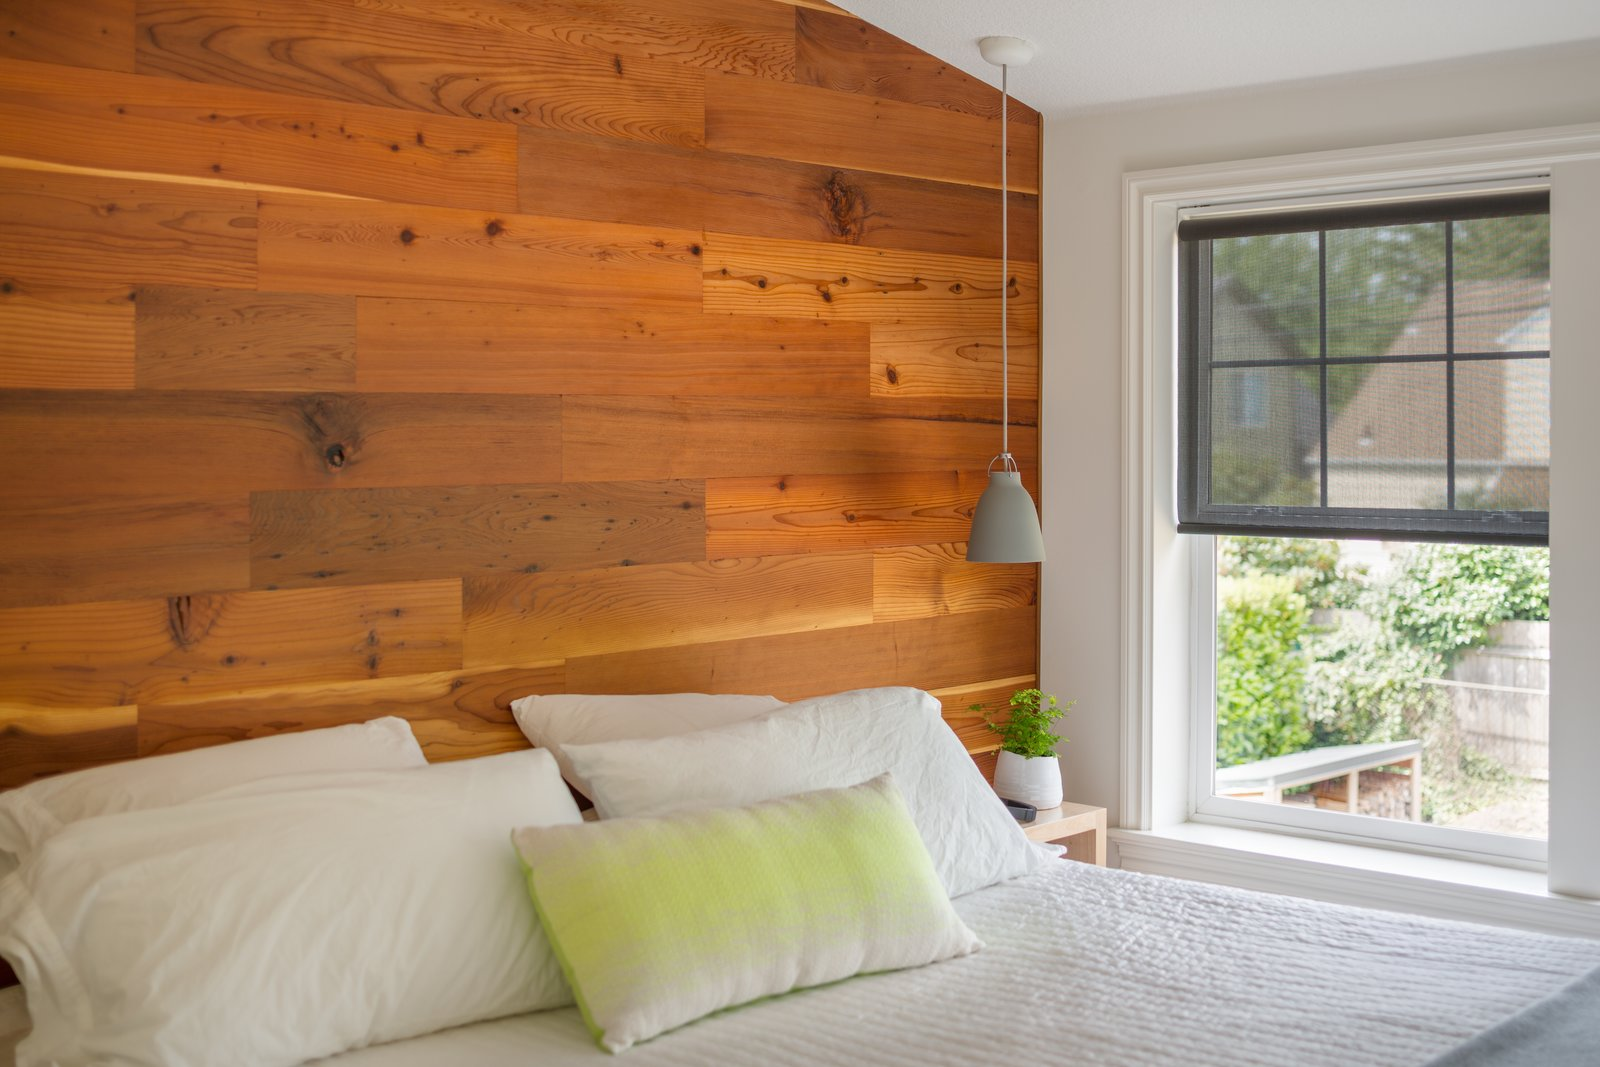 Cozy and minimalist, the wall becomes the headboard and focal point